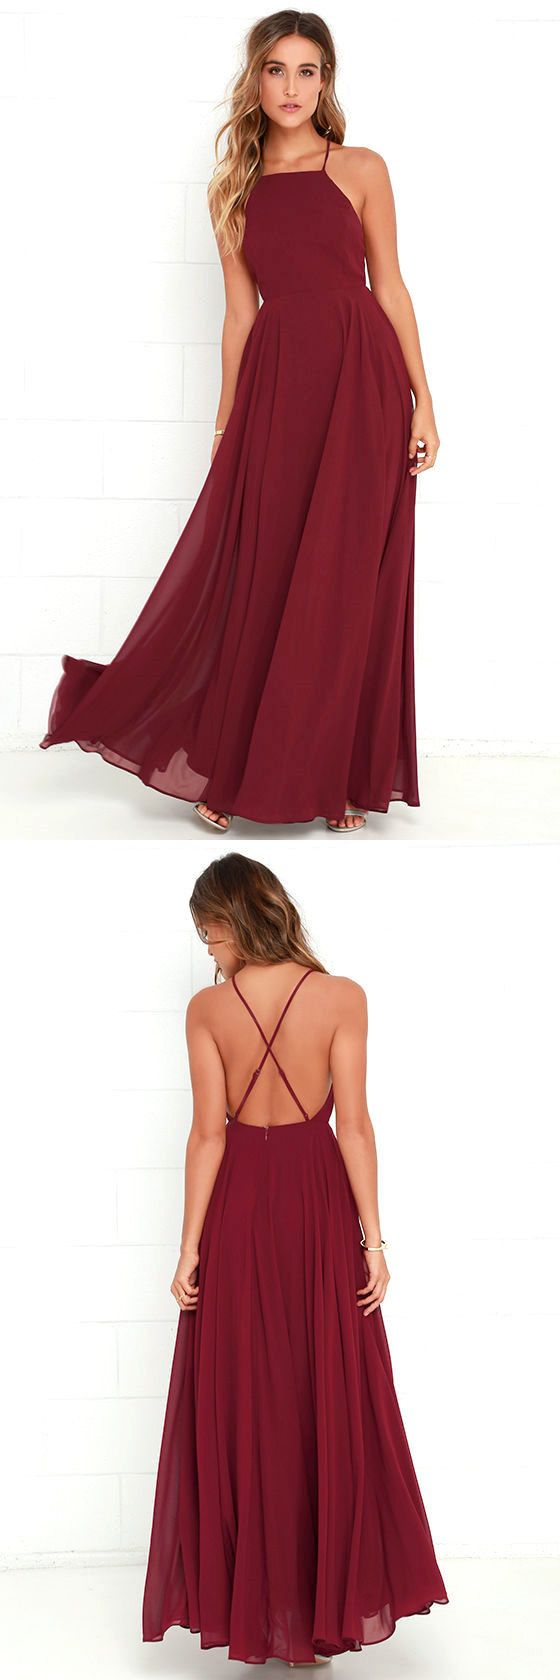 burgundy long prom dress, cheap prom dress under 100. 2017 long prom ...